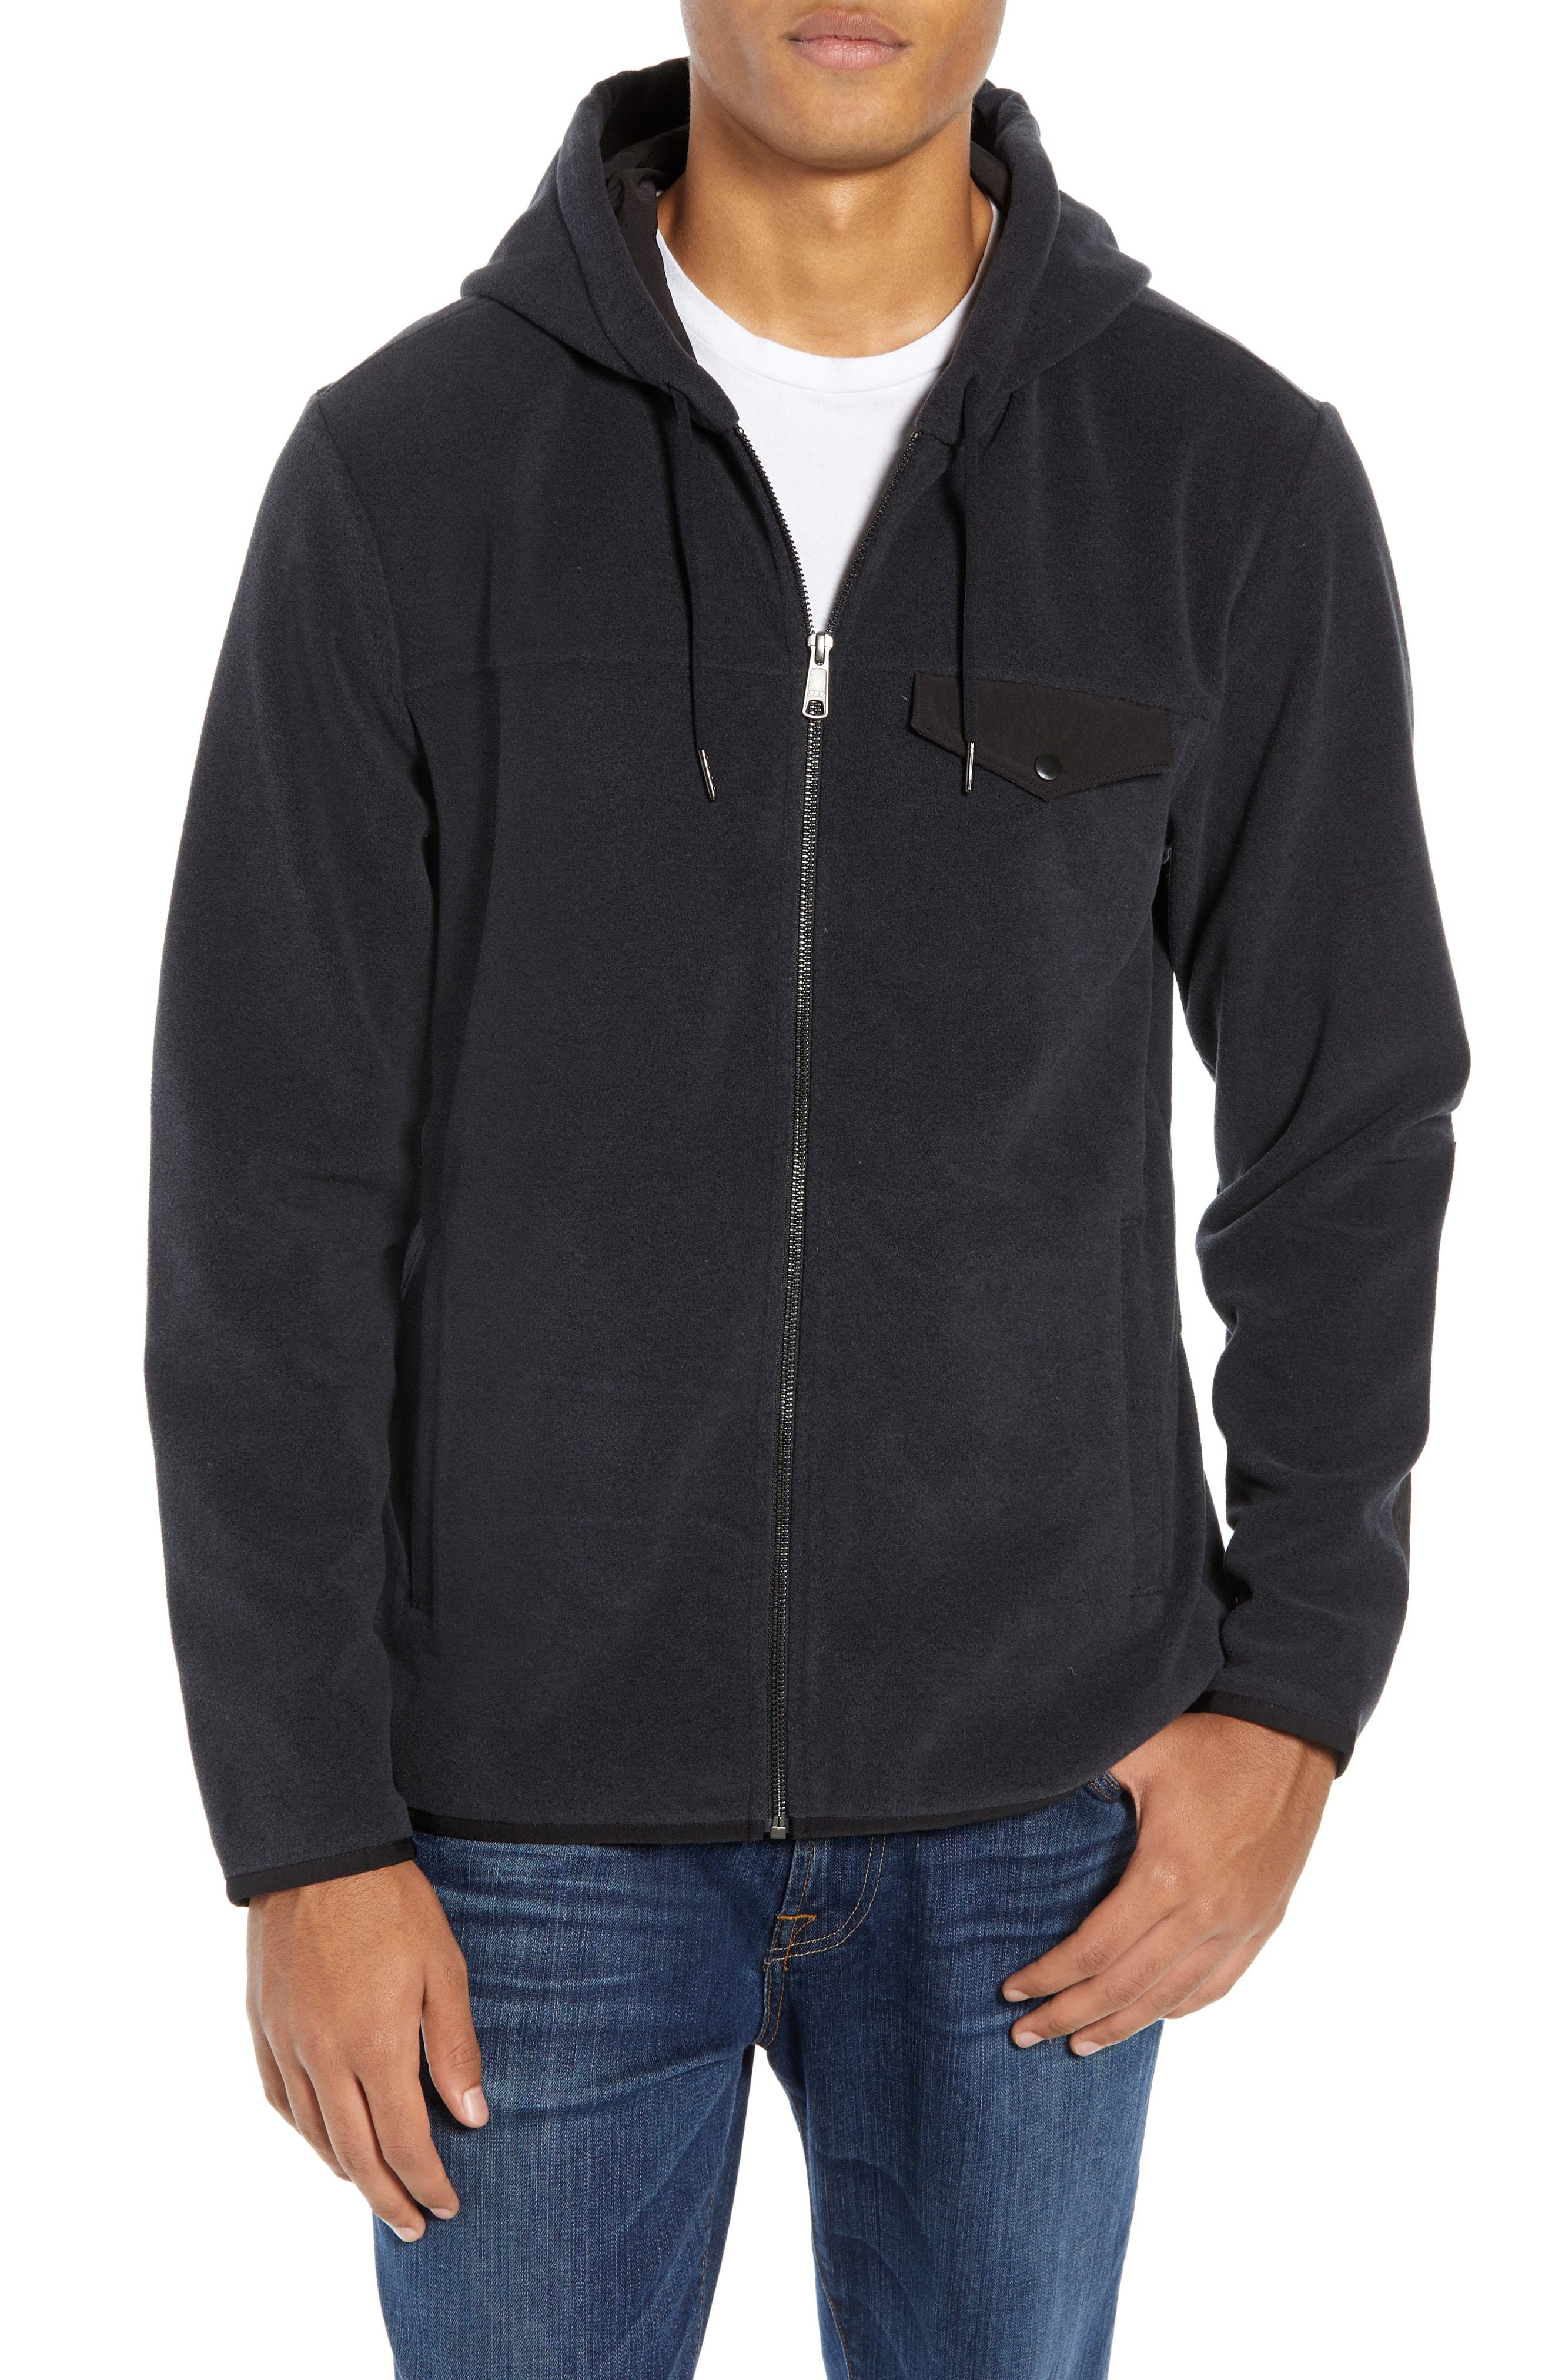 Nordstrom Men's Shop Polar Fleece Zip Hoodie